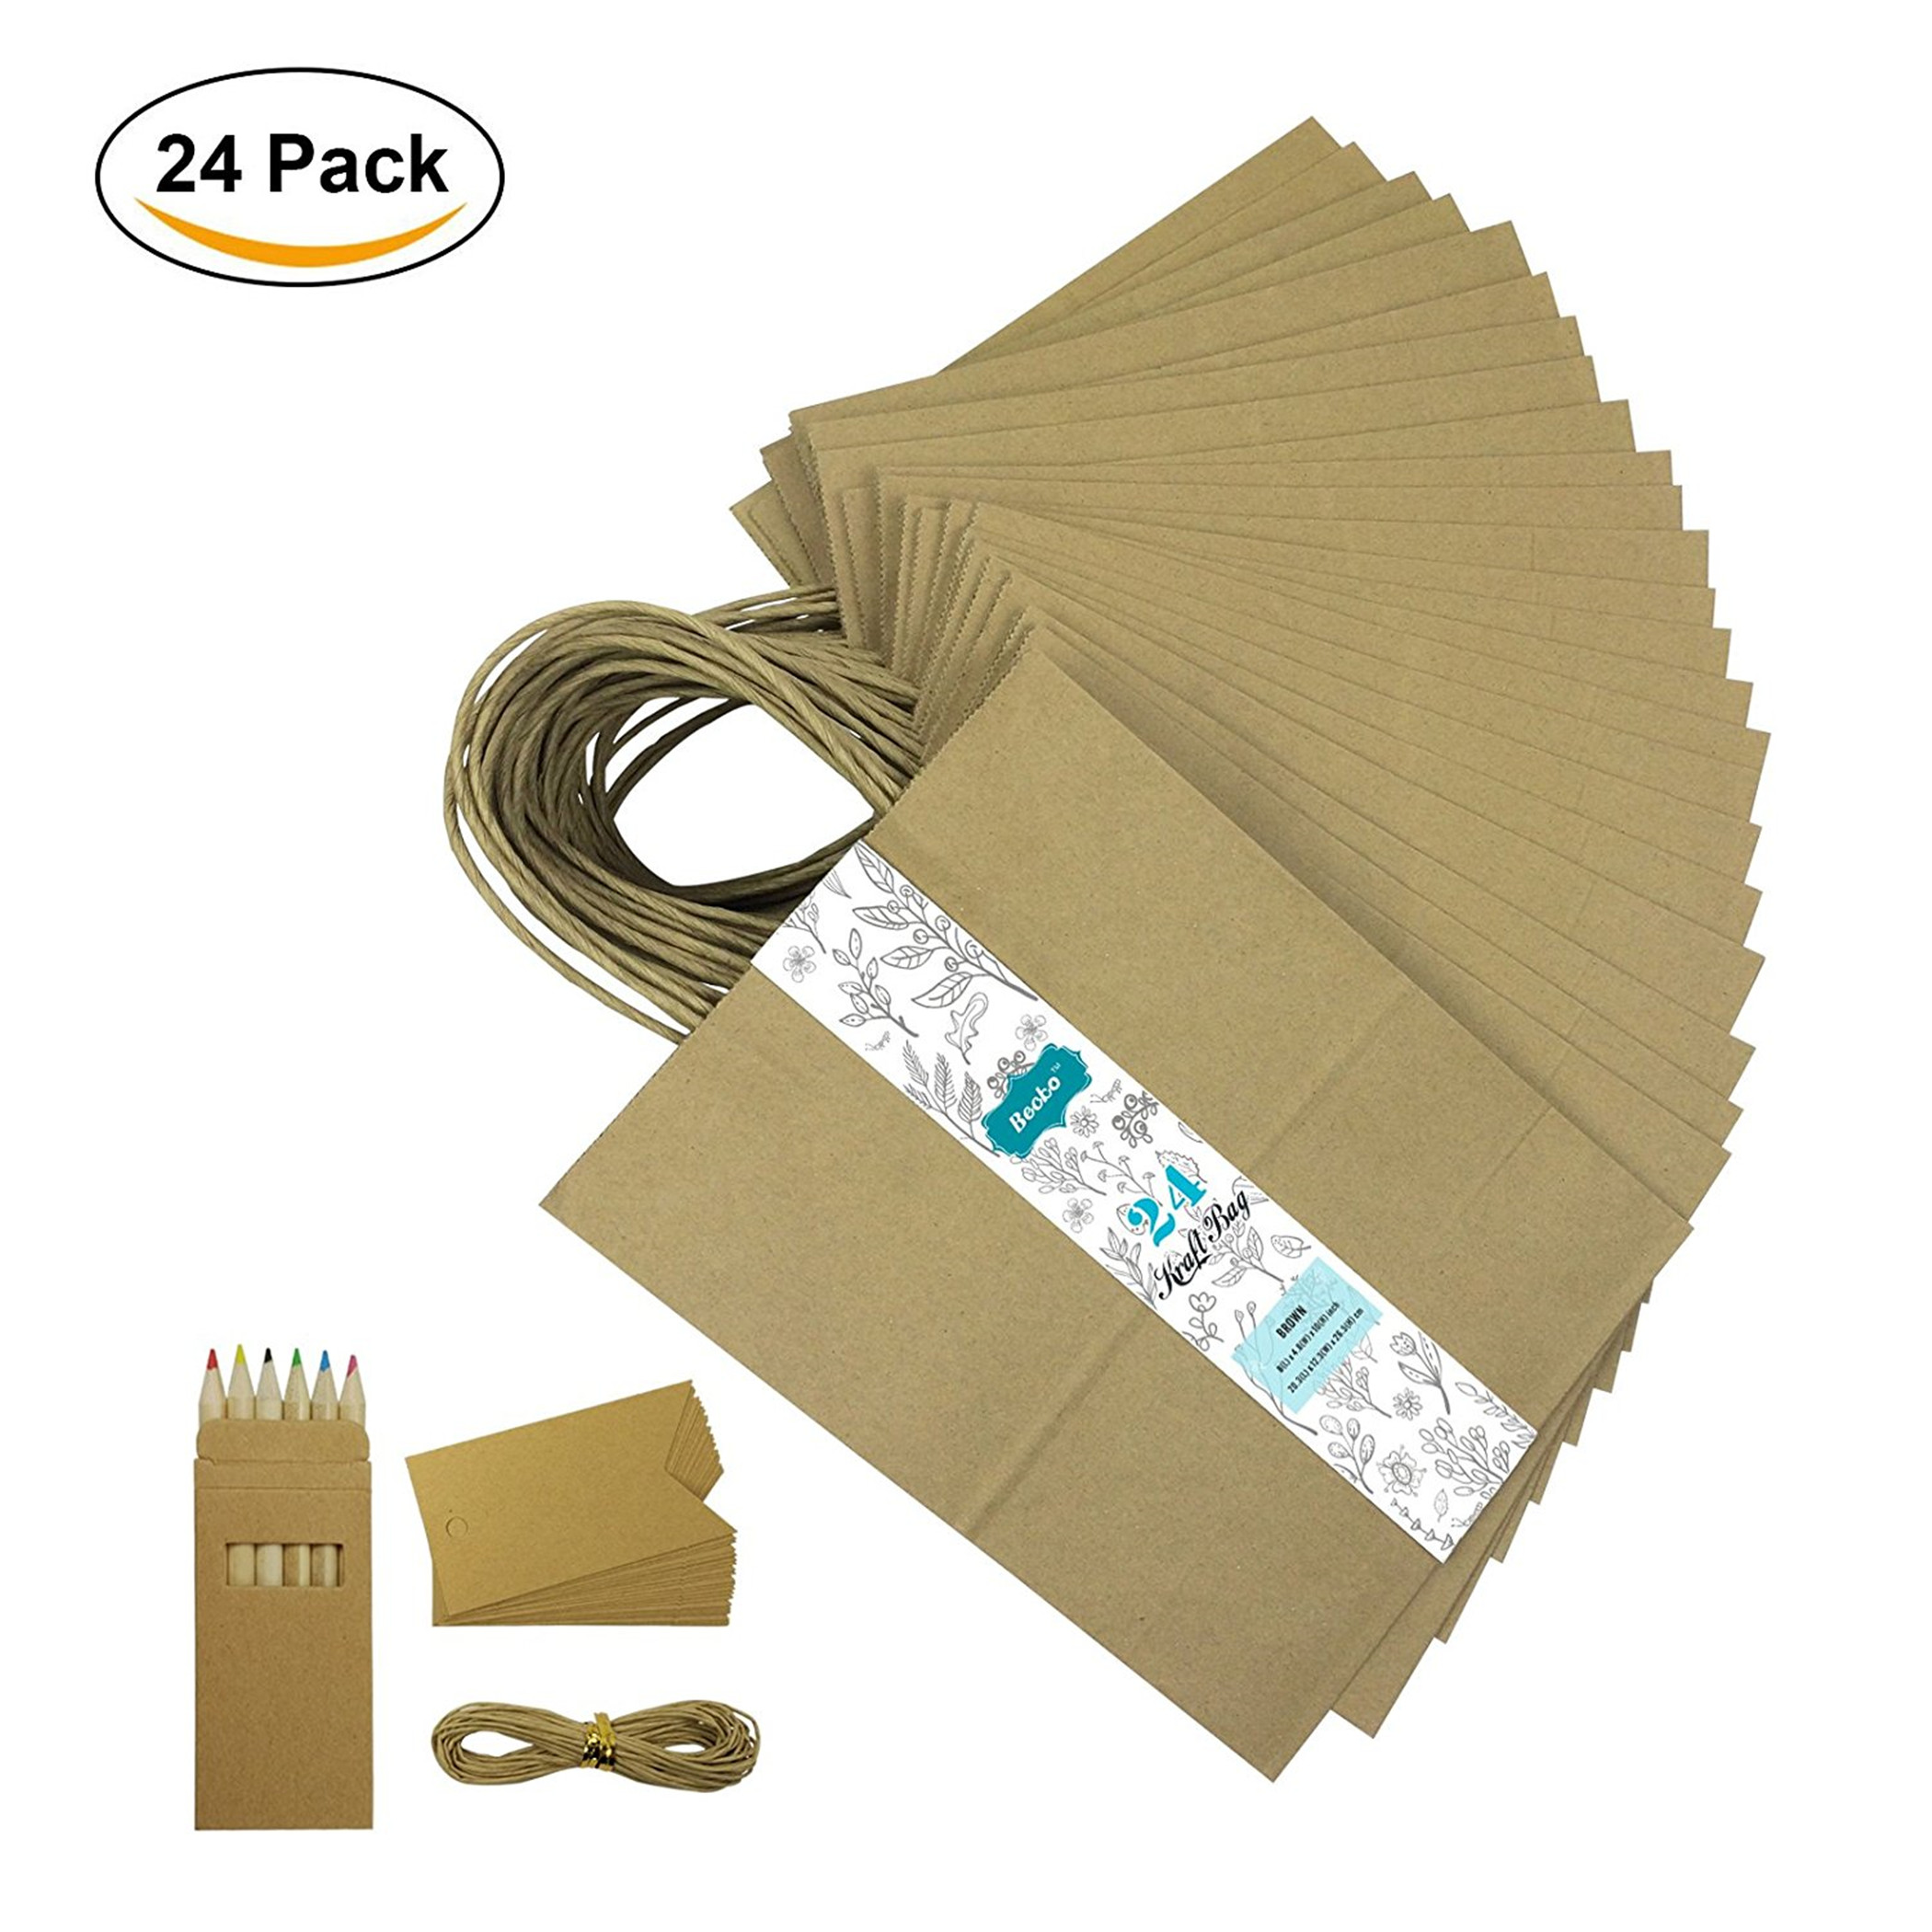 "Becko Brown Kraft Paper Bags, Shopping, Merchandise, Party, Gift Bags - 24 Count - 8""x5""x10.5"""